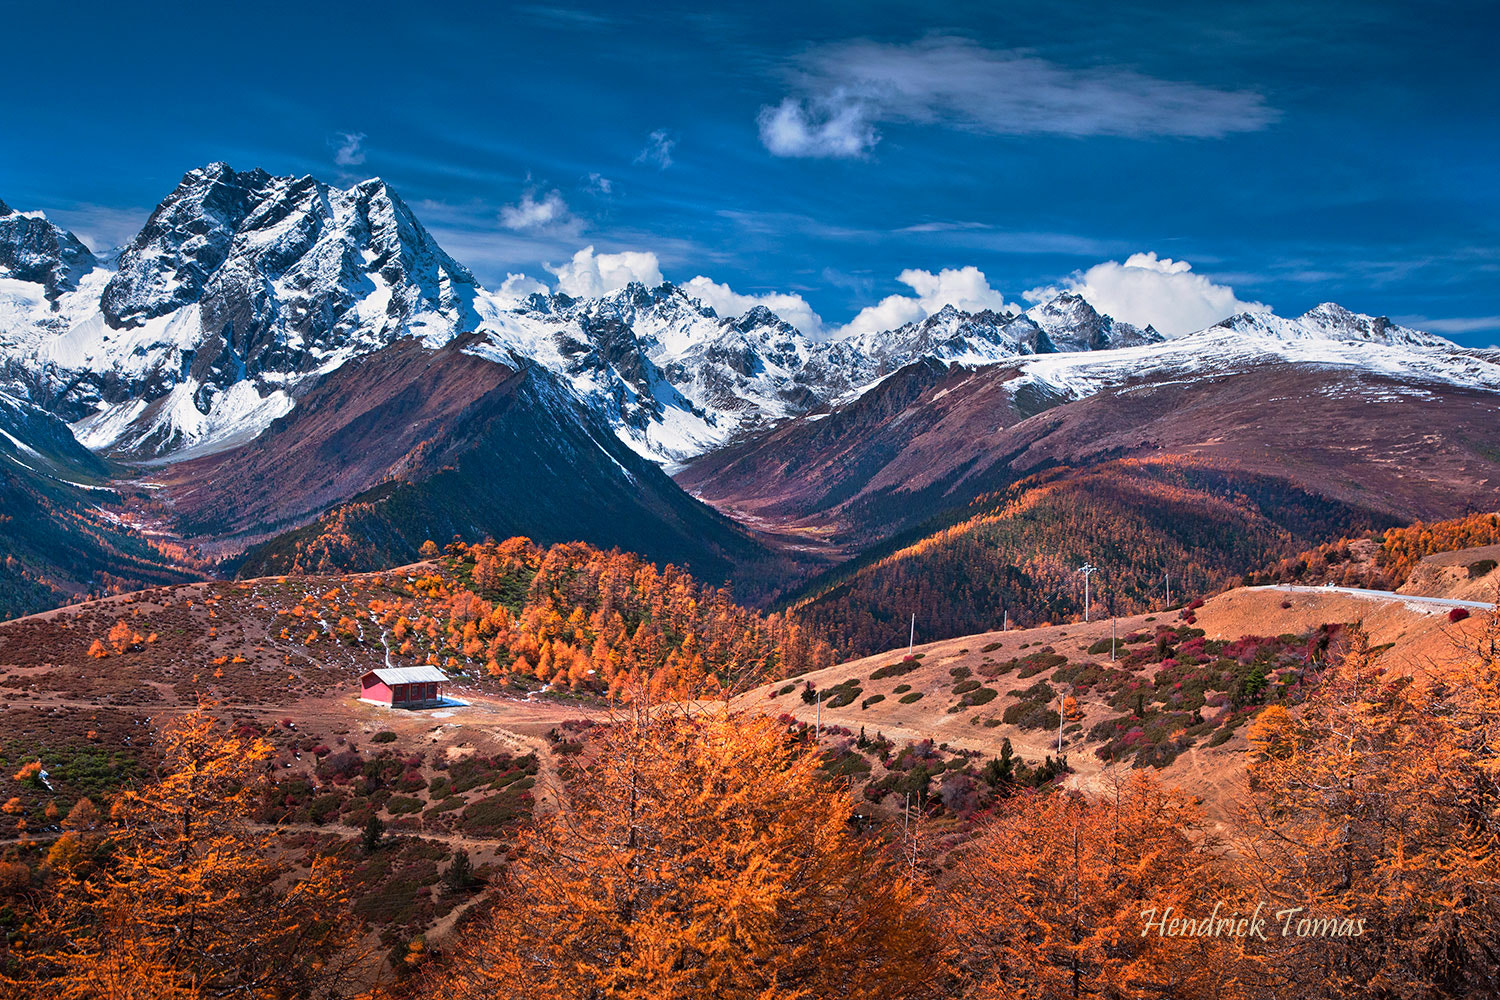 Photograph Autumn and snow mountain by Hendrick  Tomas on 500px